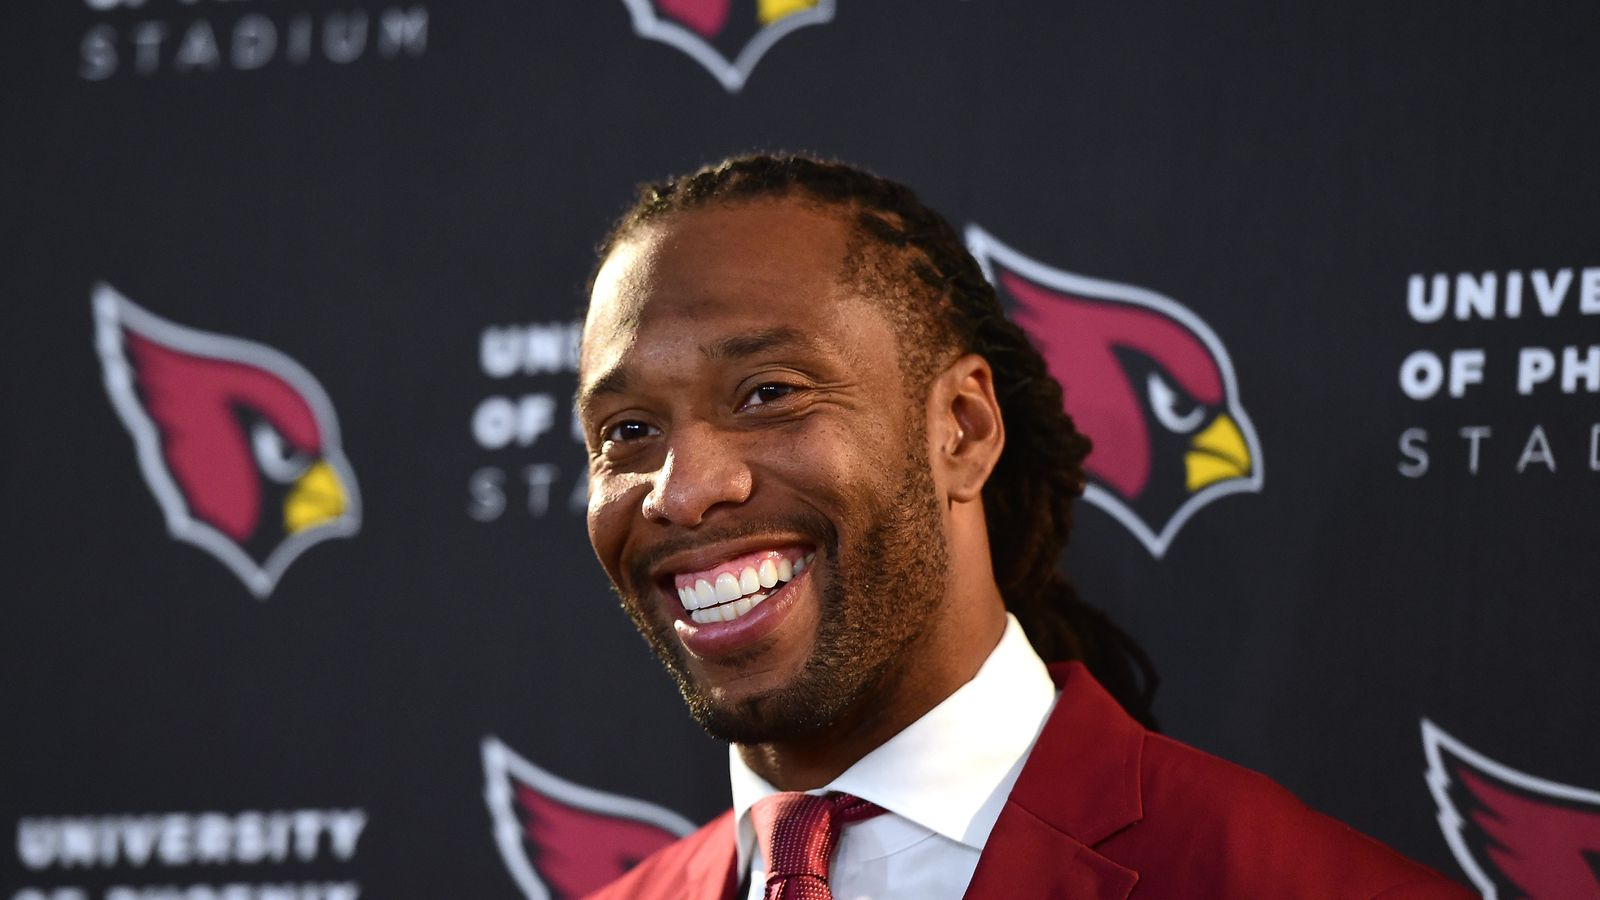 Larry Fitzgerald Will Return For Another Nfl Season